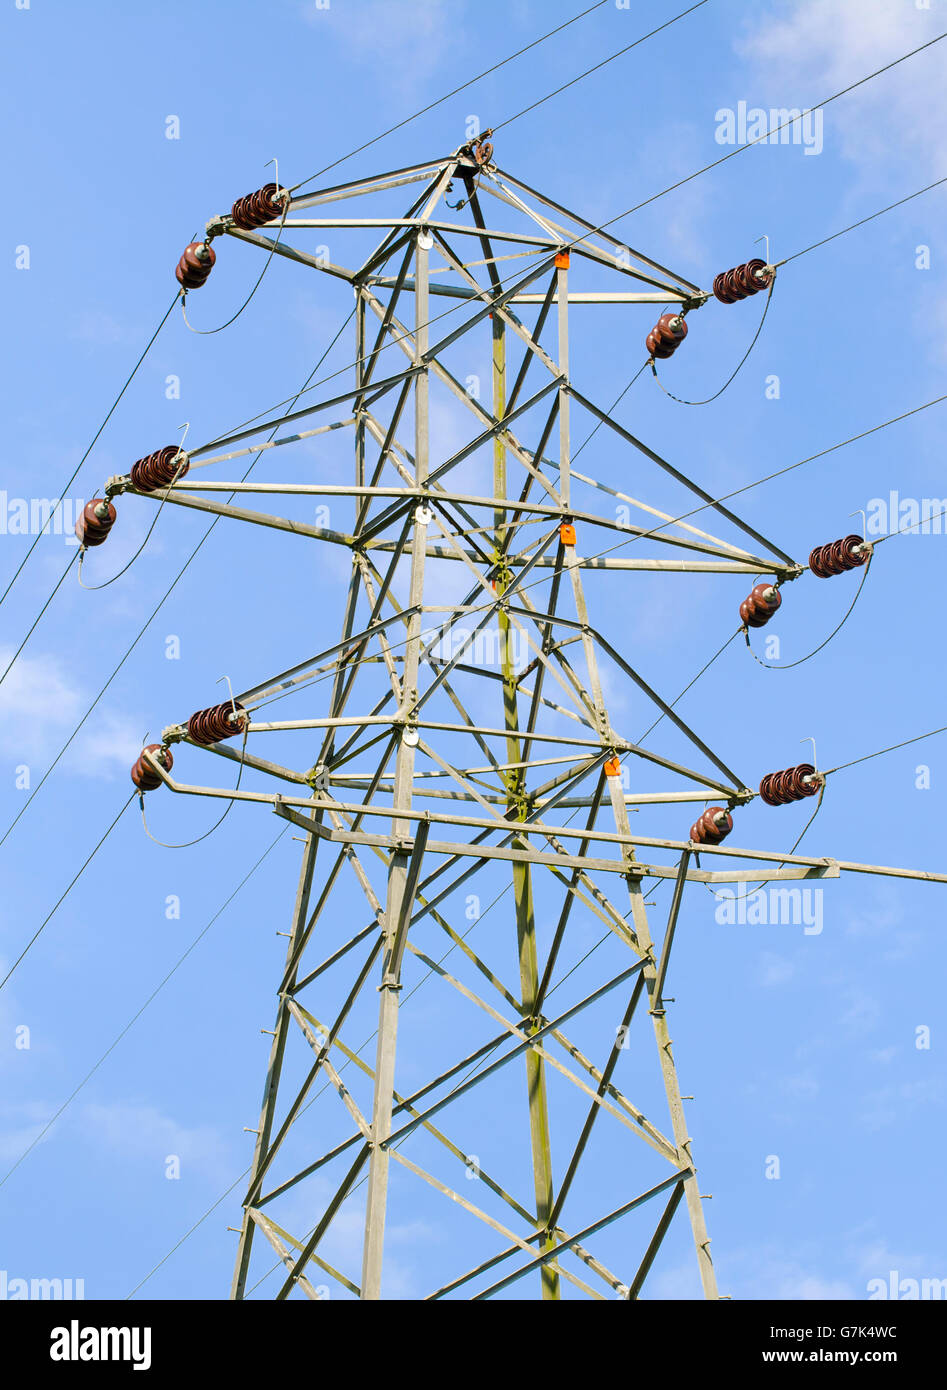 Electricity pylon in the UK. - Stock Image